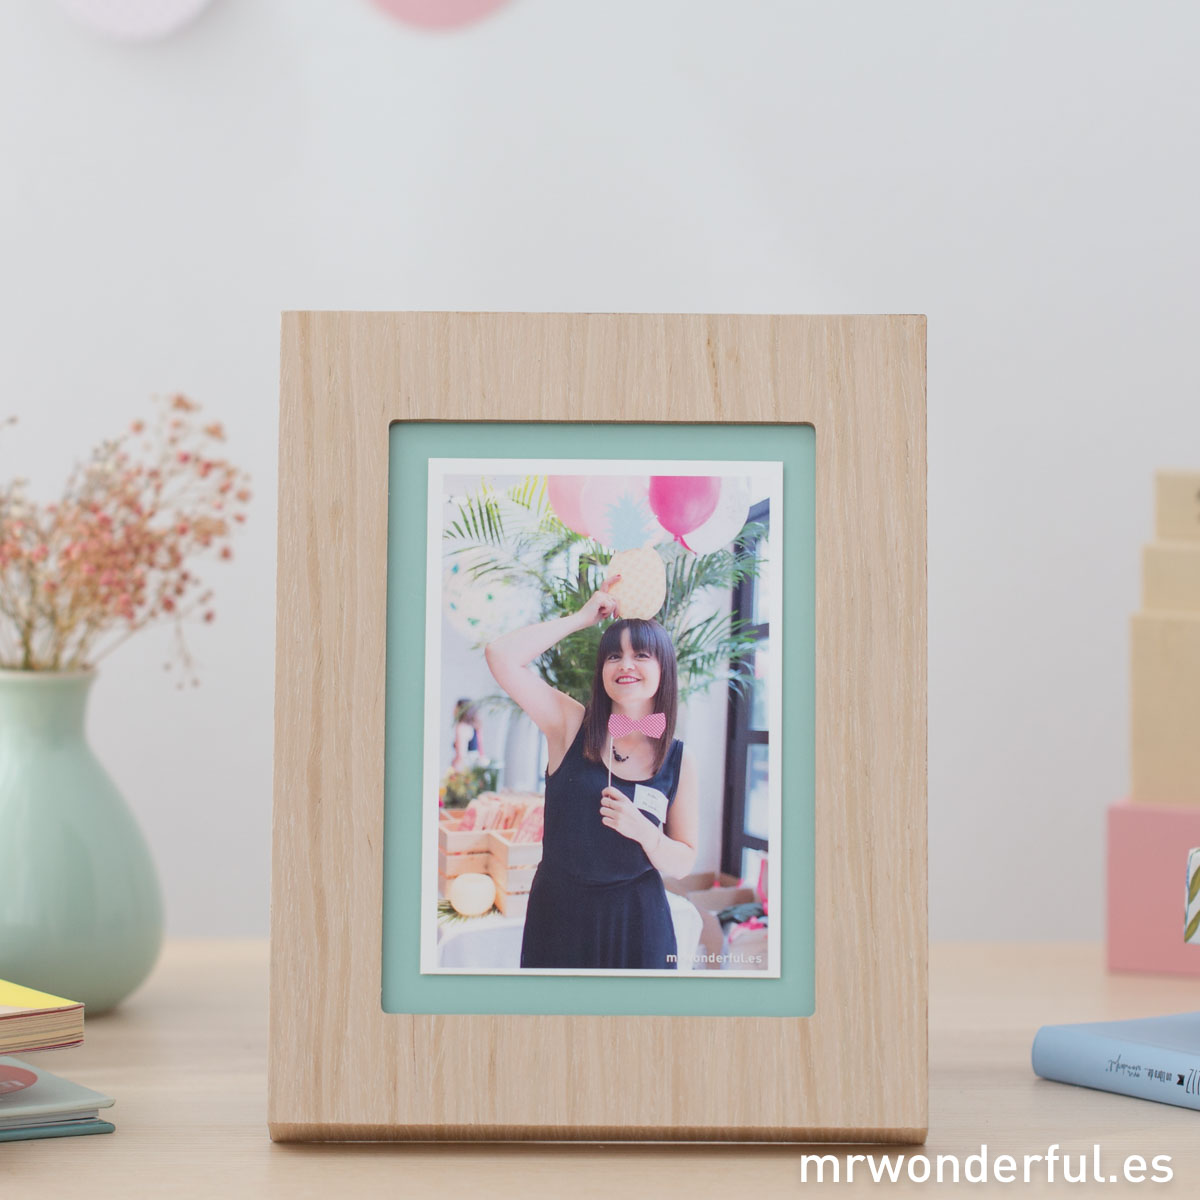 mrwonderful_PRA02898_Marco-de-fotos-de-madera-y-color-mint-4